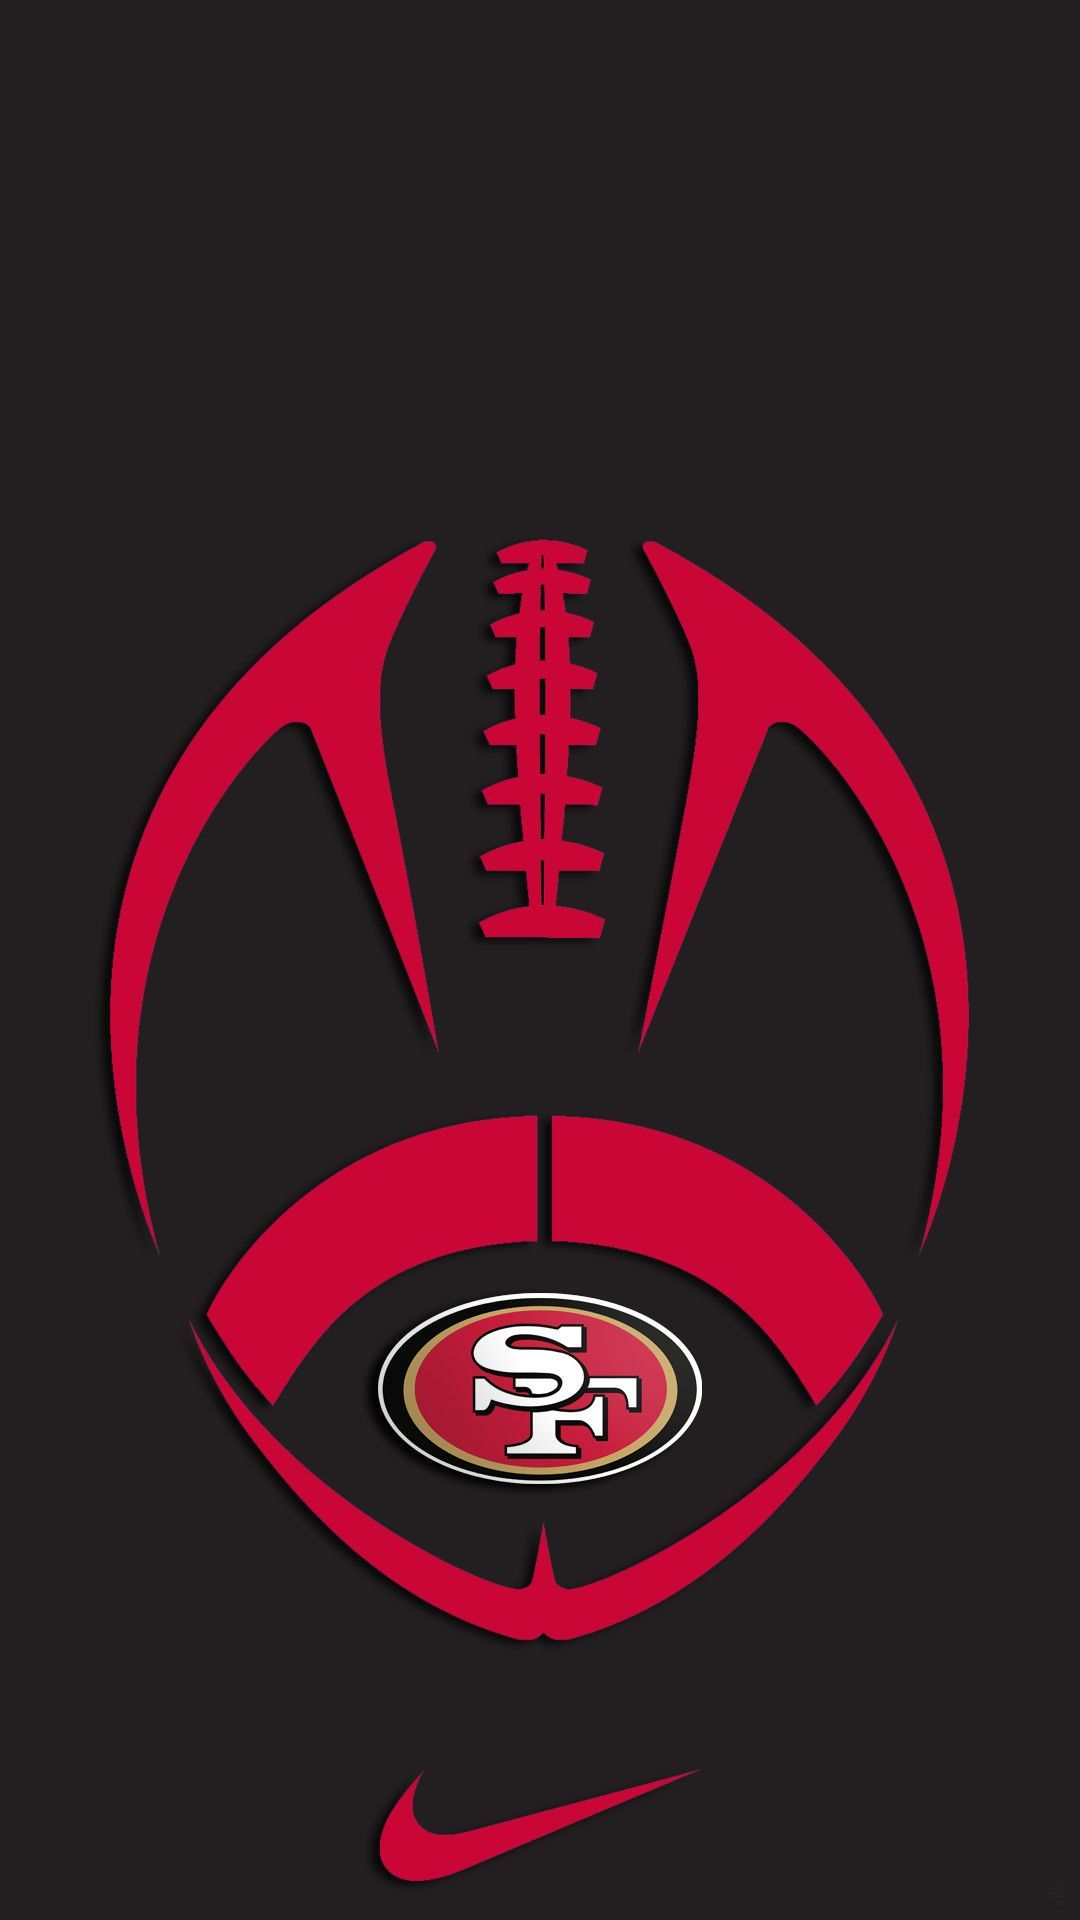 San Francisco 49ers Wallpaper Iphone Motorcycles in 2020 San 1080x1920